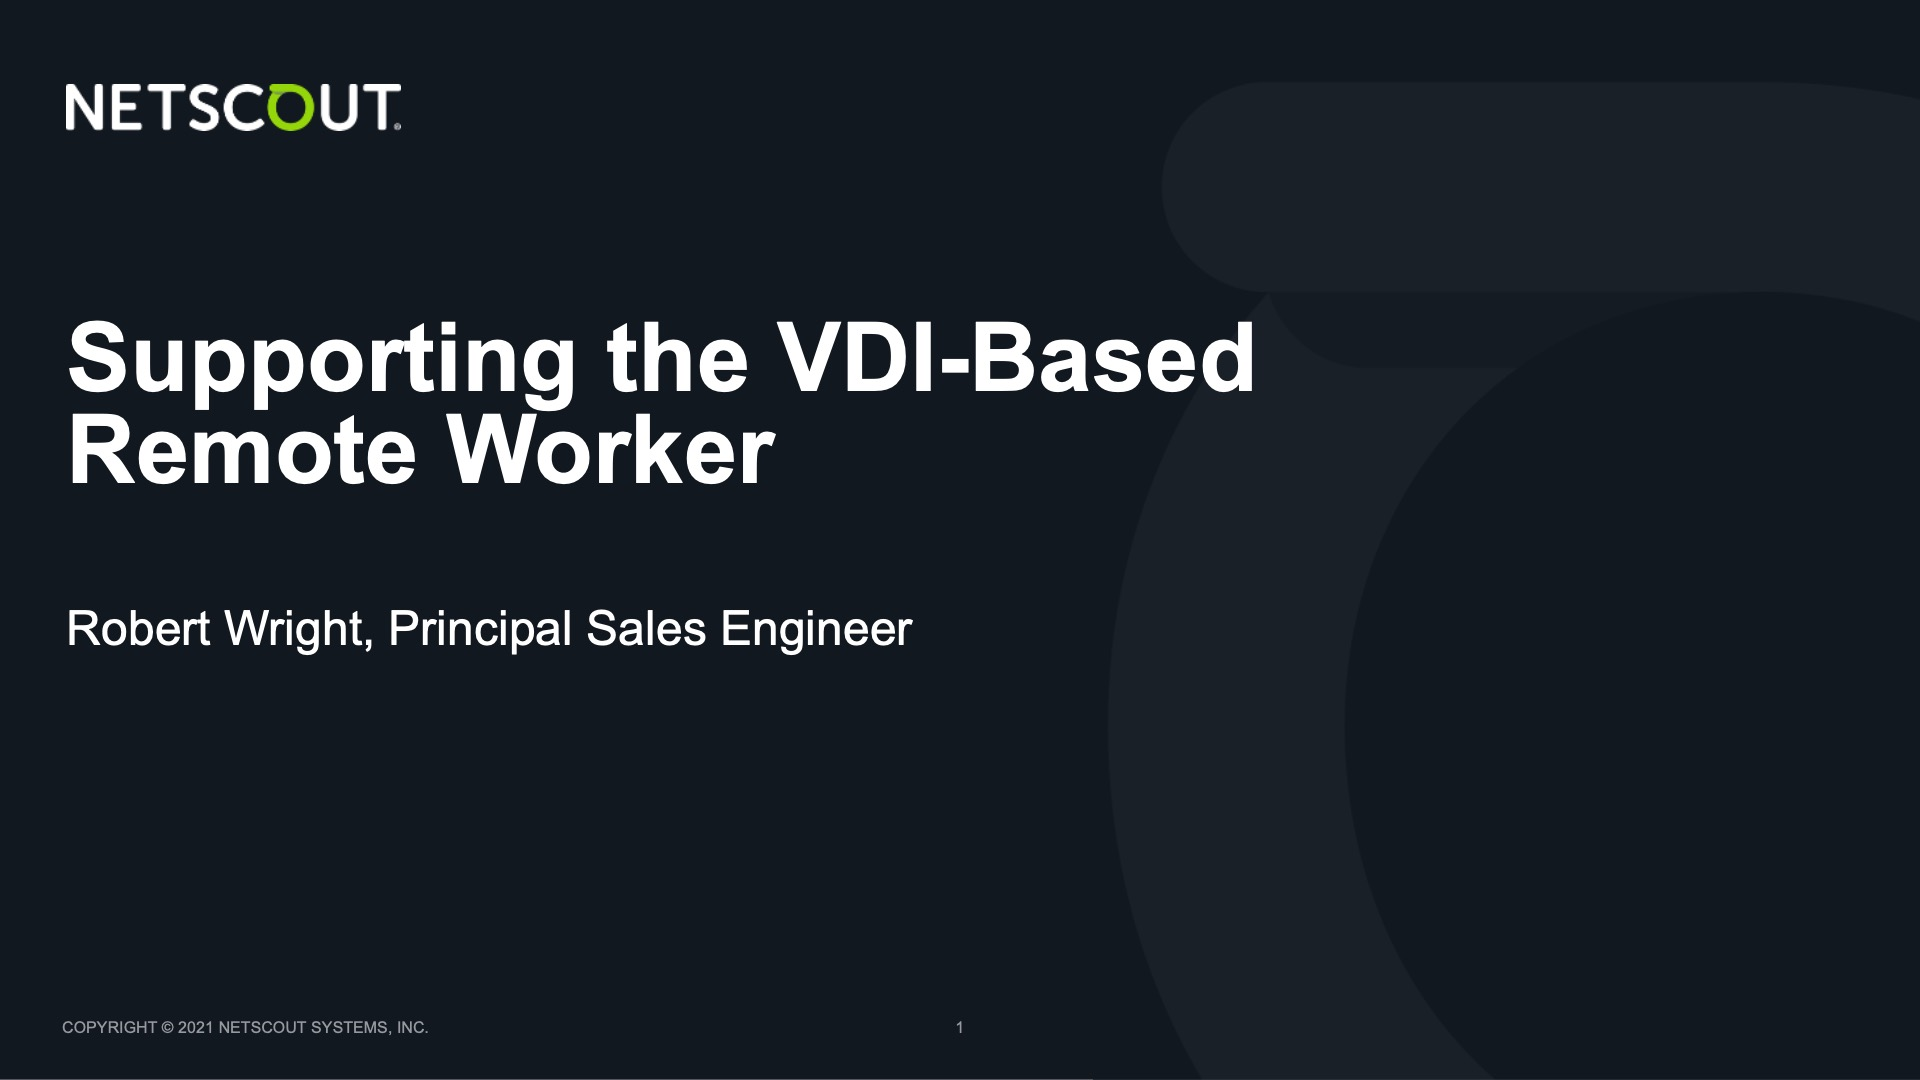 Supporting the VDI-Based Remote Worker